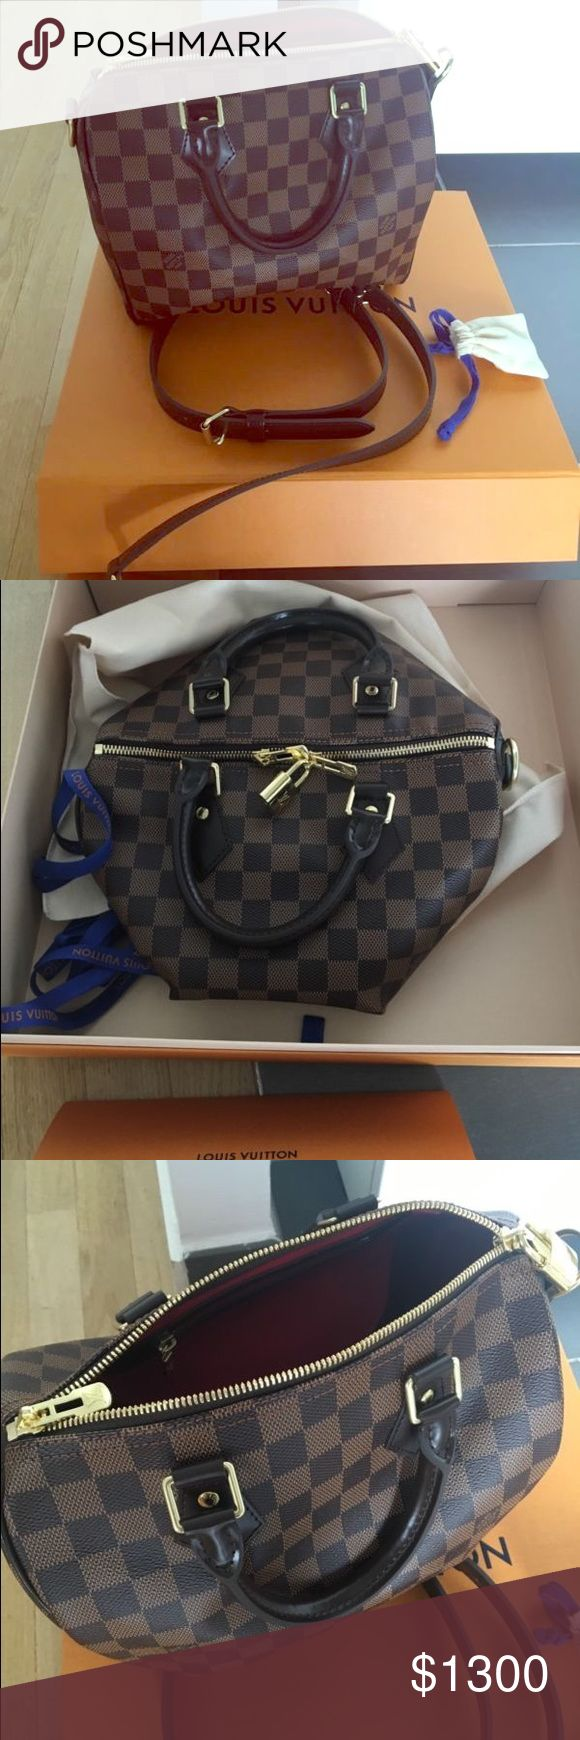 Louis Vuitton Speedy Bandouliere 25 BRAND NEW AUTHENTIC 2017 LV SPEEDY Bandouliere size 25. This bag is in PERFECT brand new condition. Absolutely NO flaws. made in France. I only used this purse a handful of times and sadly it does not fit my lifestyle as I wanted it to so it's just been sitting in the box! It will come with EVERYTHING it came with when purchased (dustbag, lock&keys, extra straps, receipt&cards) still smells new  this bag was about $1,500 with taxes so you'd be saving a few…